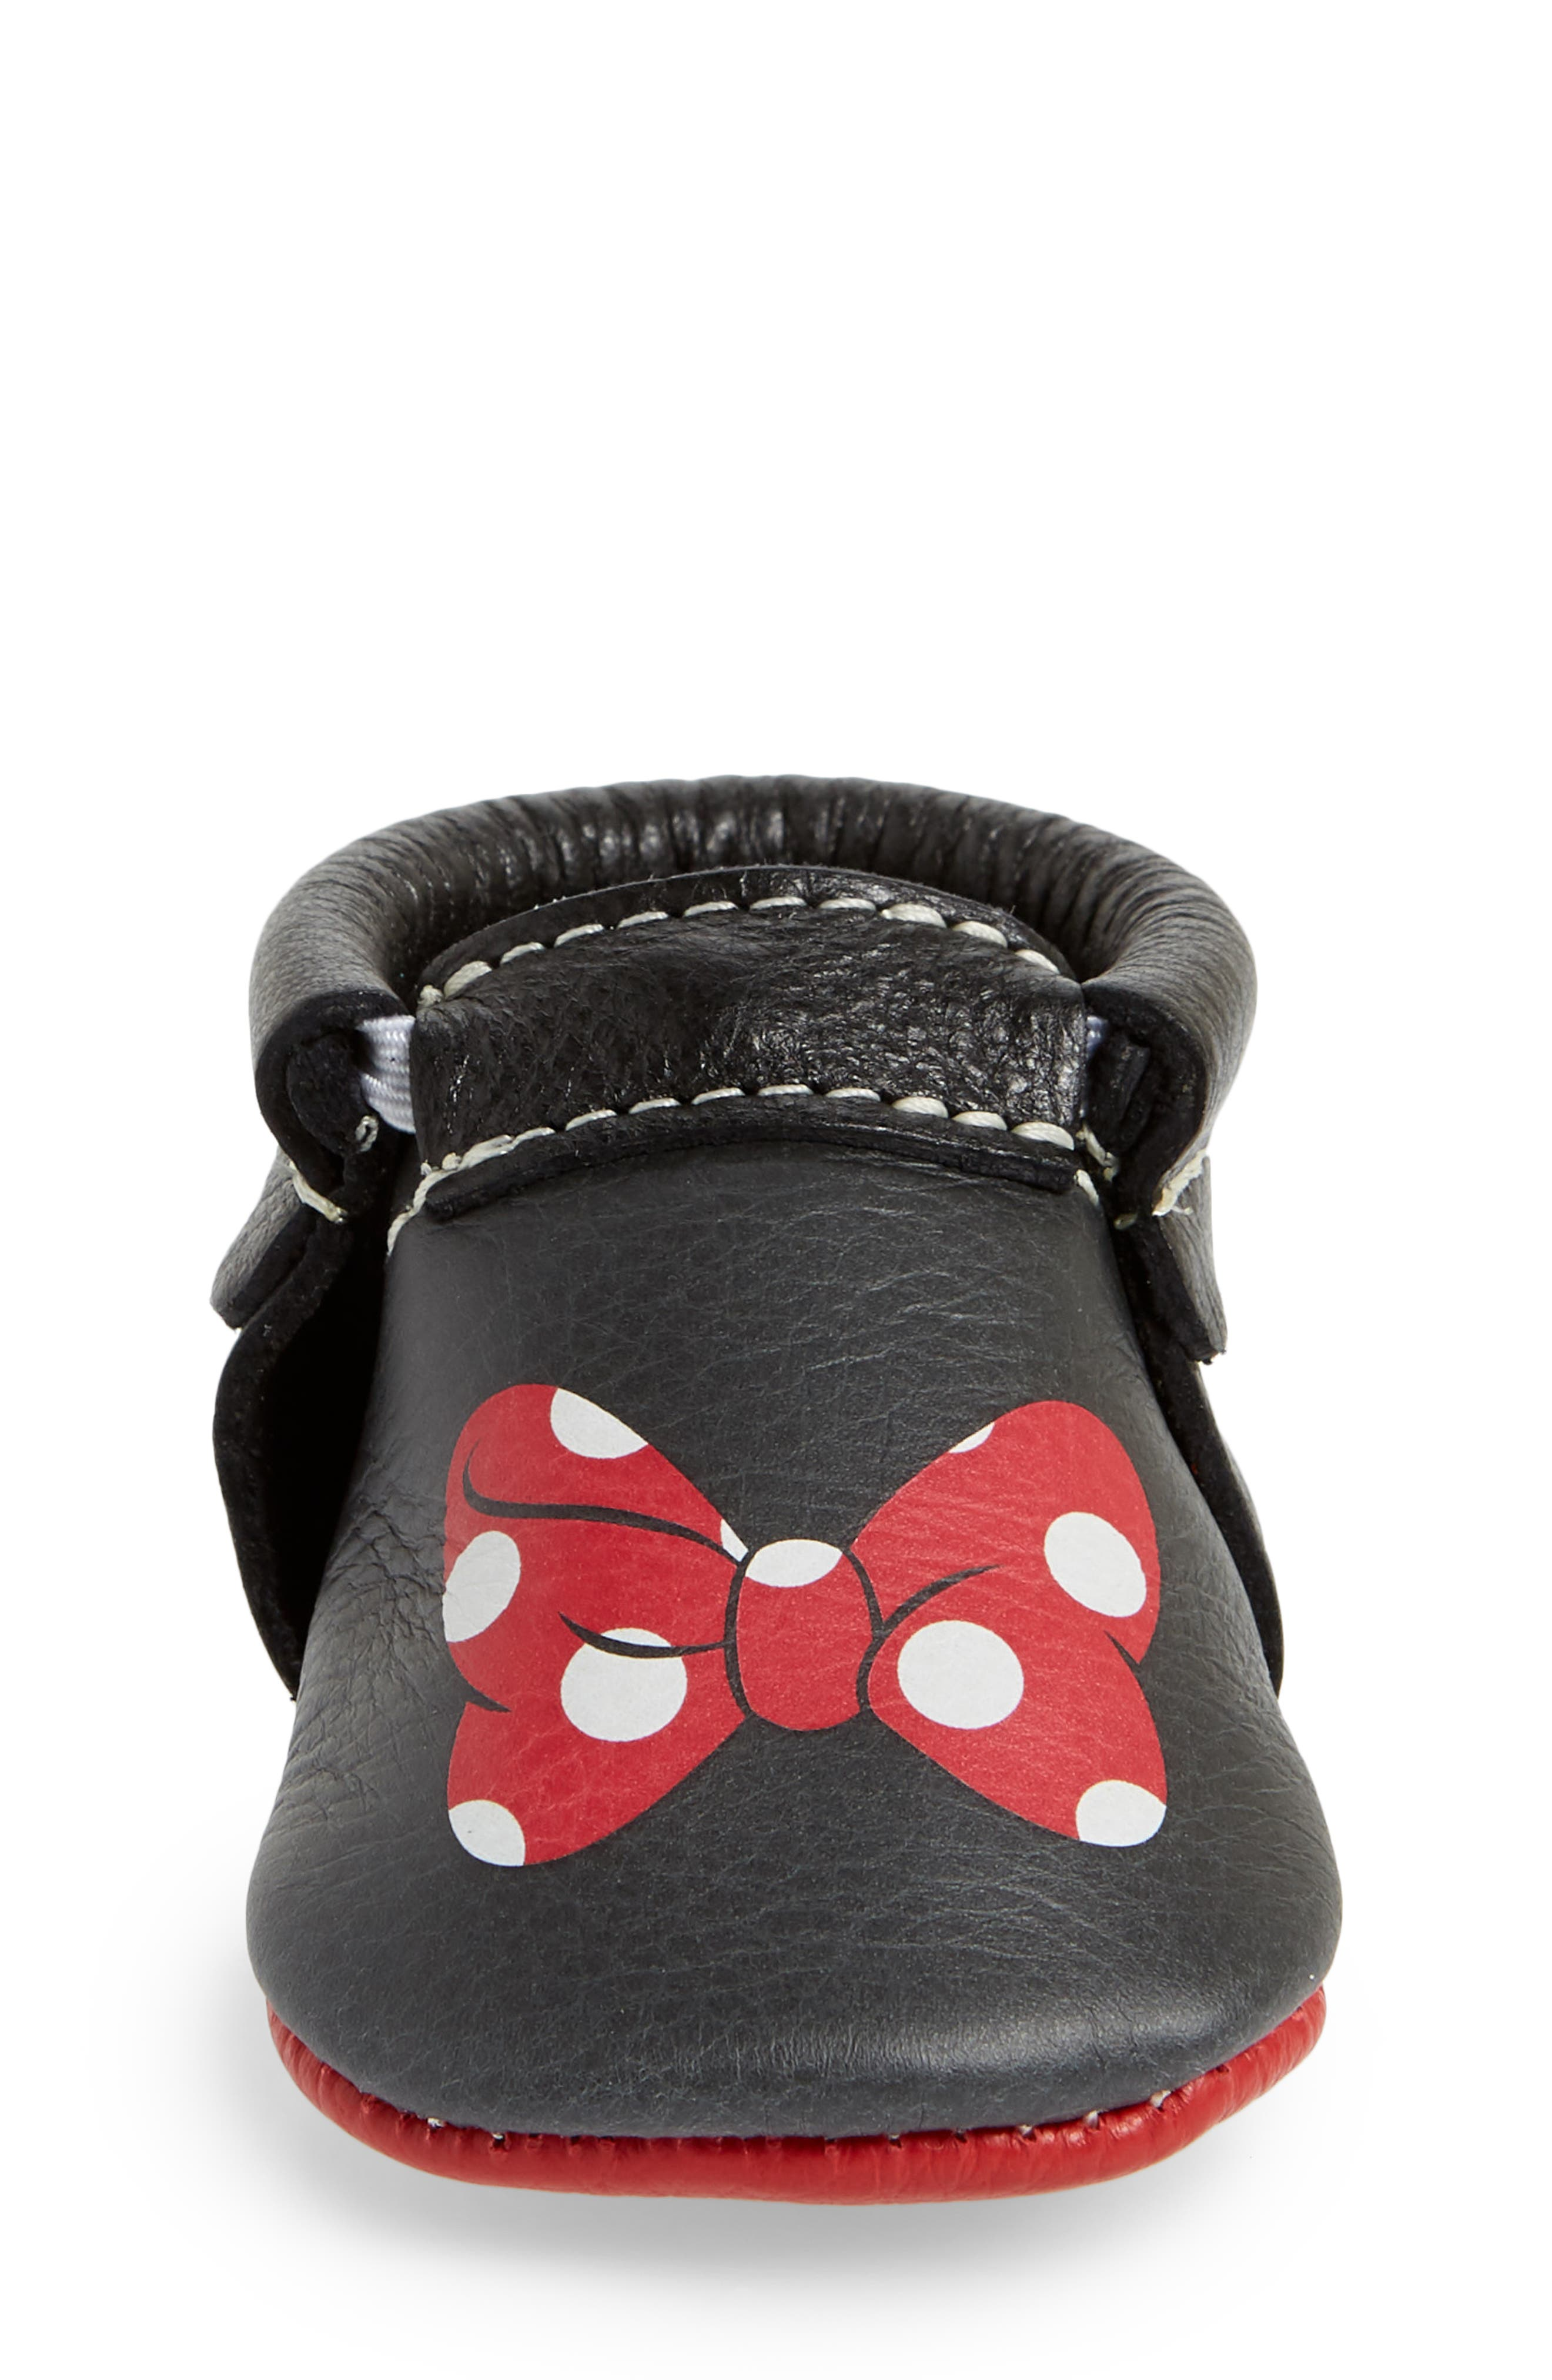 x Disney<sup>®</sup> Baby Minnie Mouse Crib Moccasin,                             Alternate thumbnail 4, color,                             001